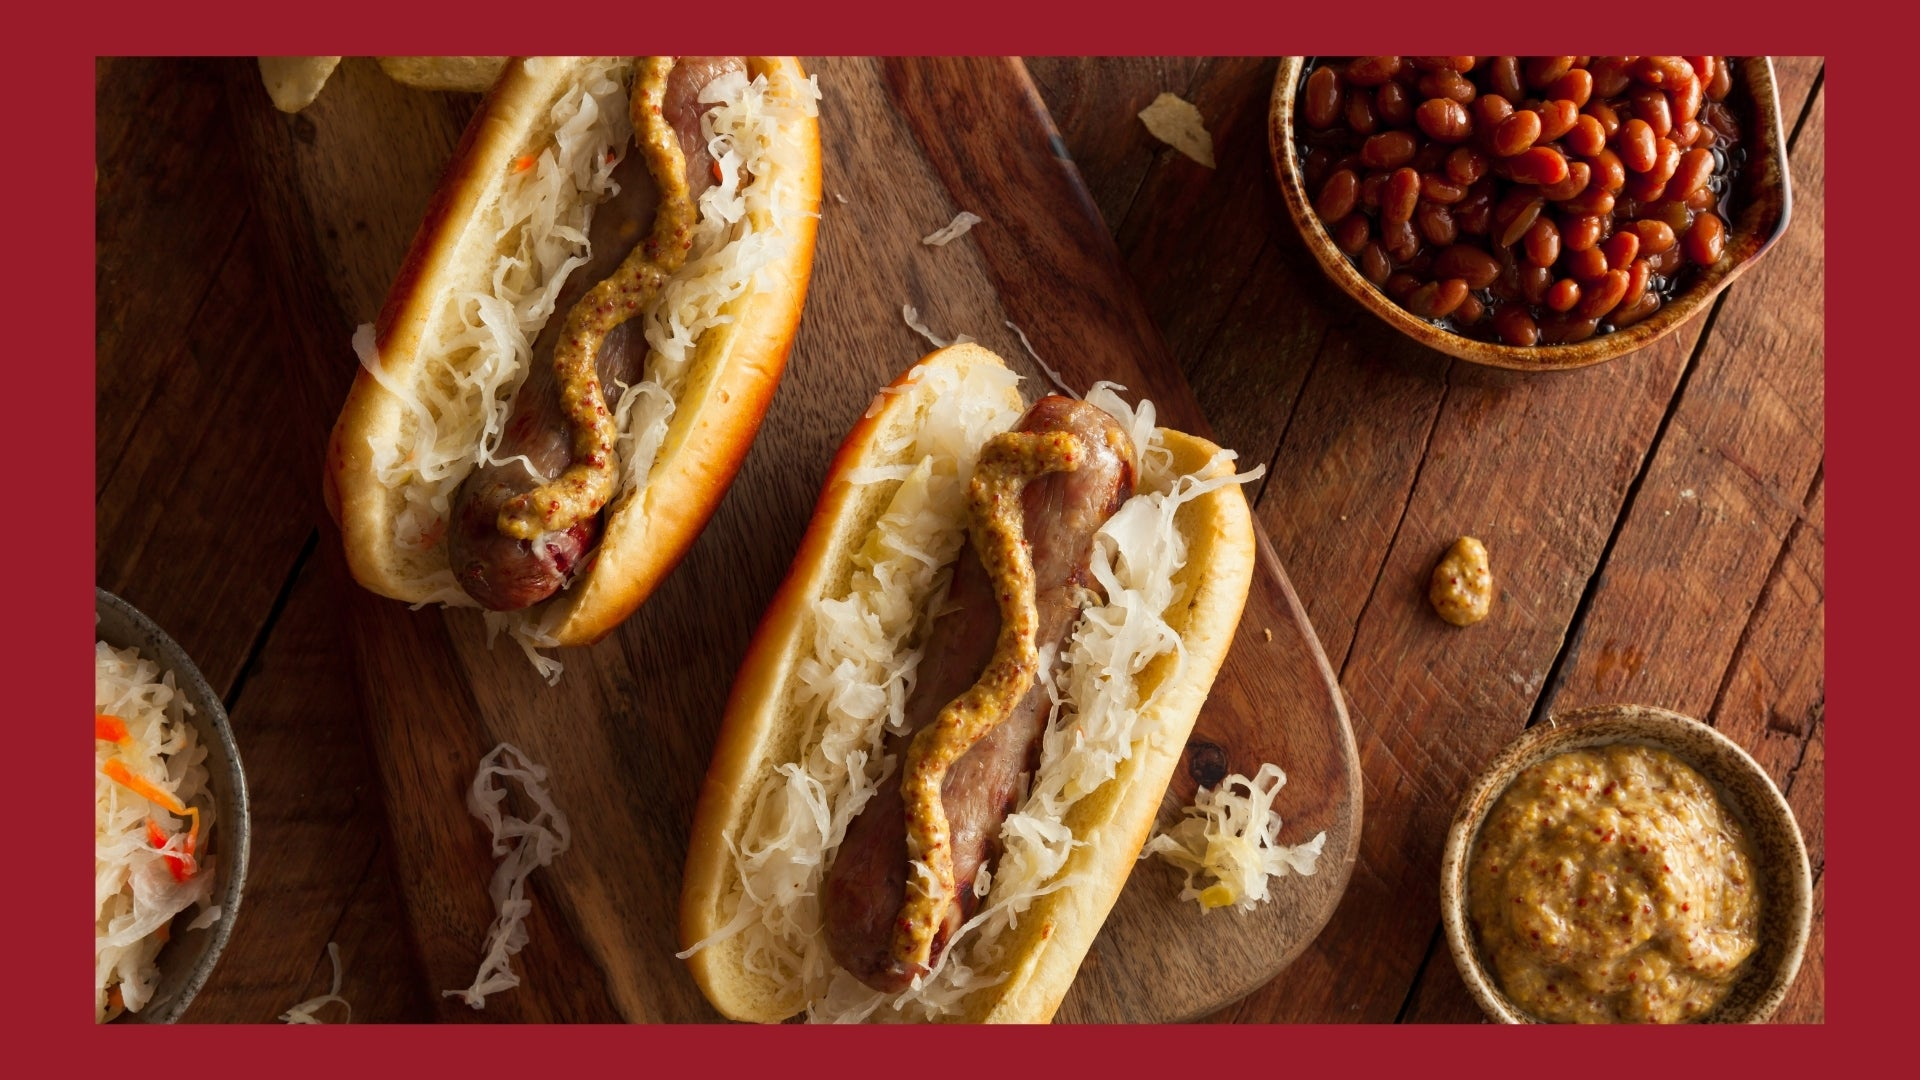 Bratwursts in buns and topped with sauerkraut, onions, and brown mustard on a wooden cutting board.